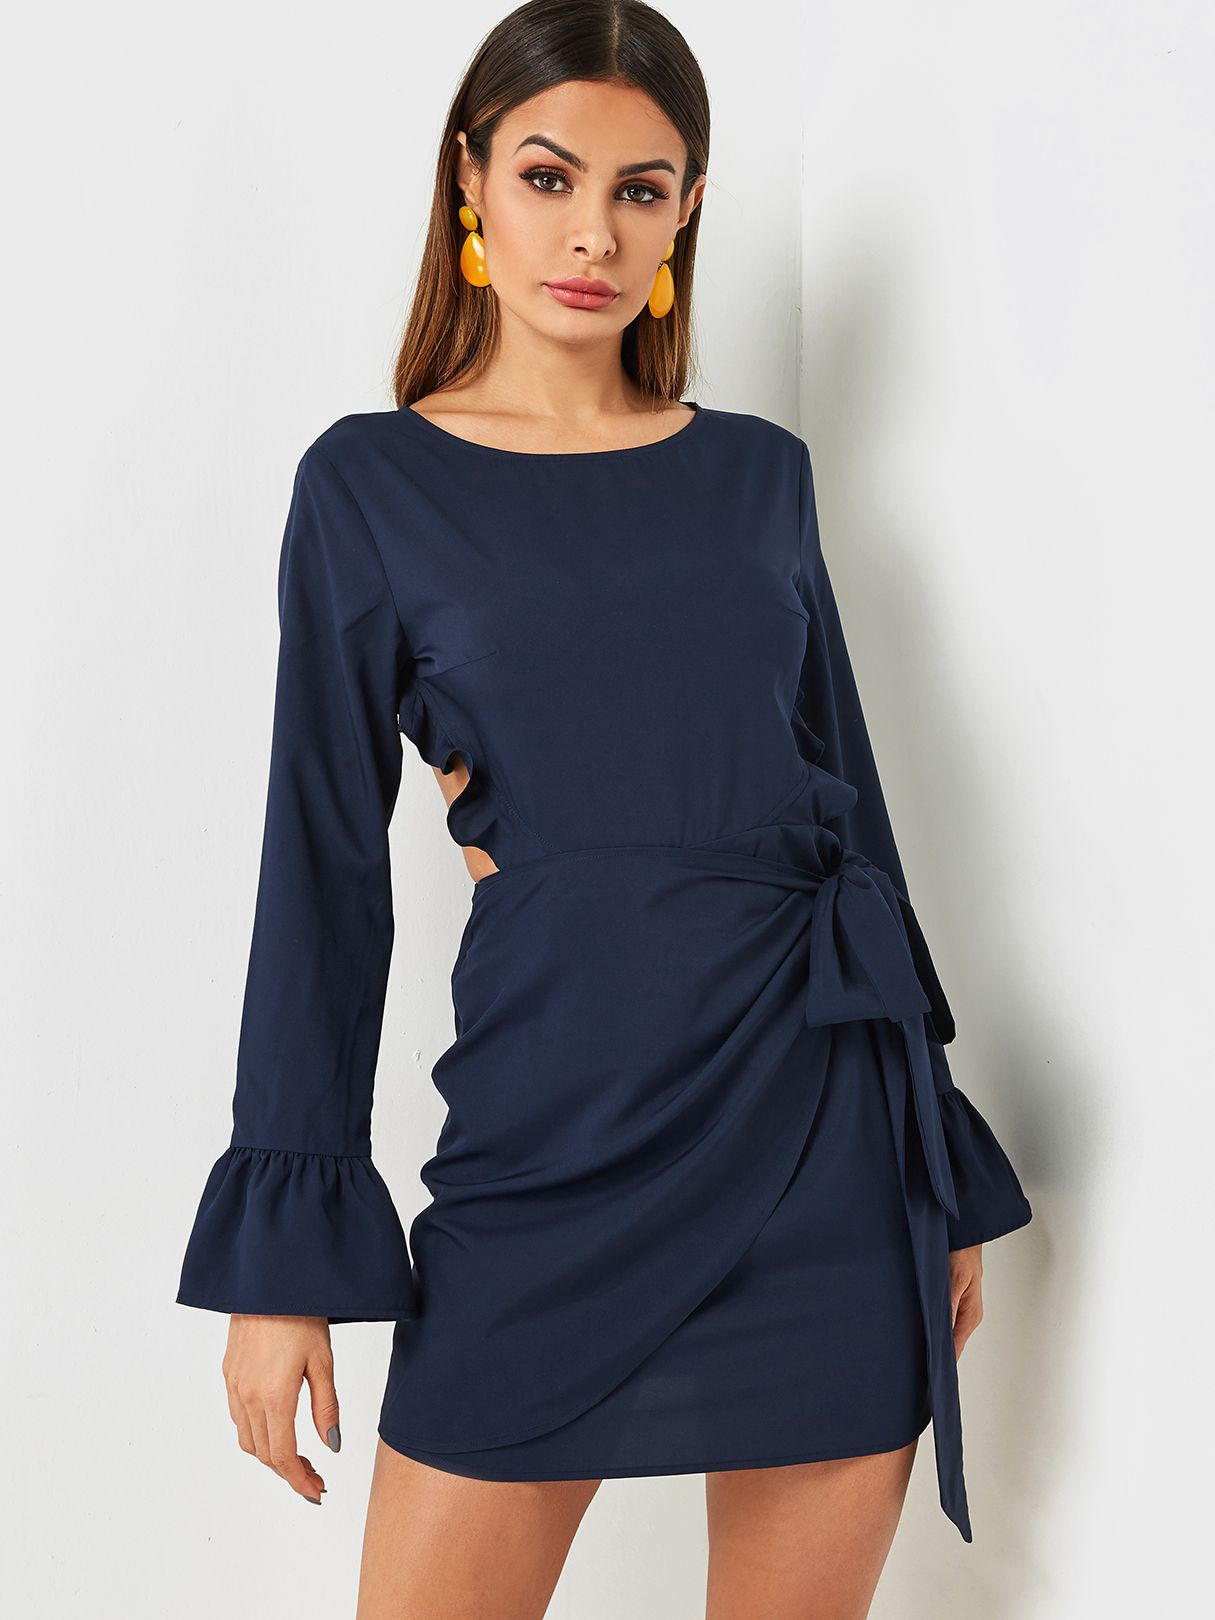 c4a7ad80ae4 Navy Self Tie Backless Design Dress - US 17.95 -YOINS